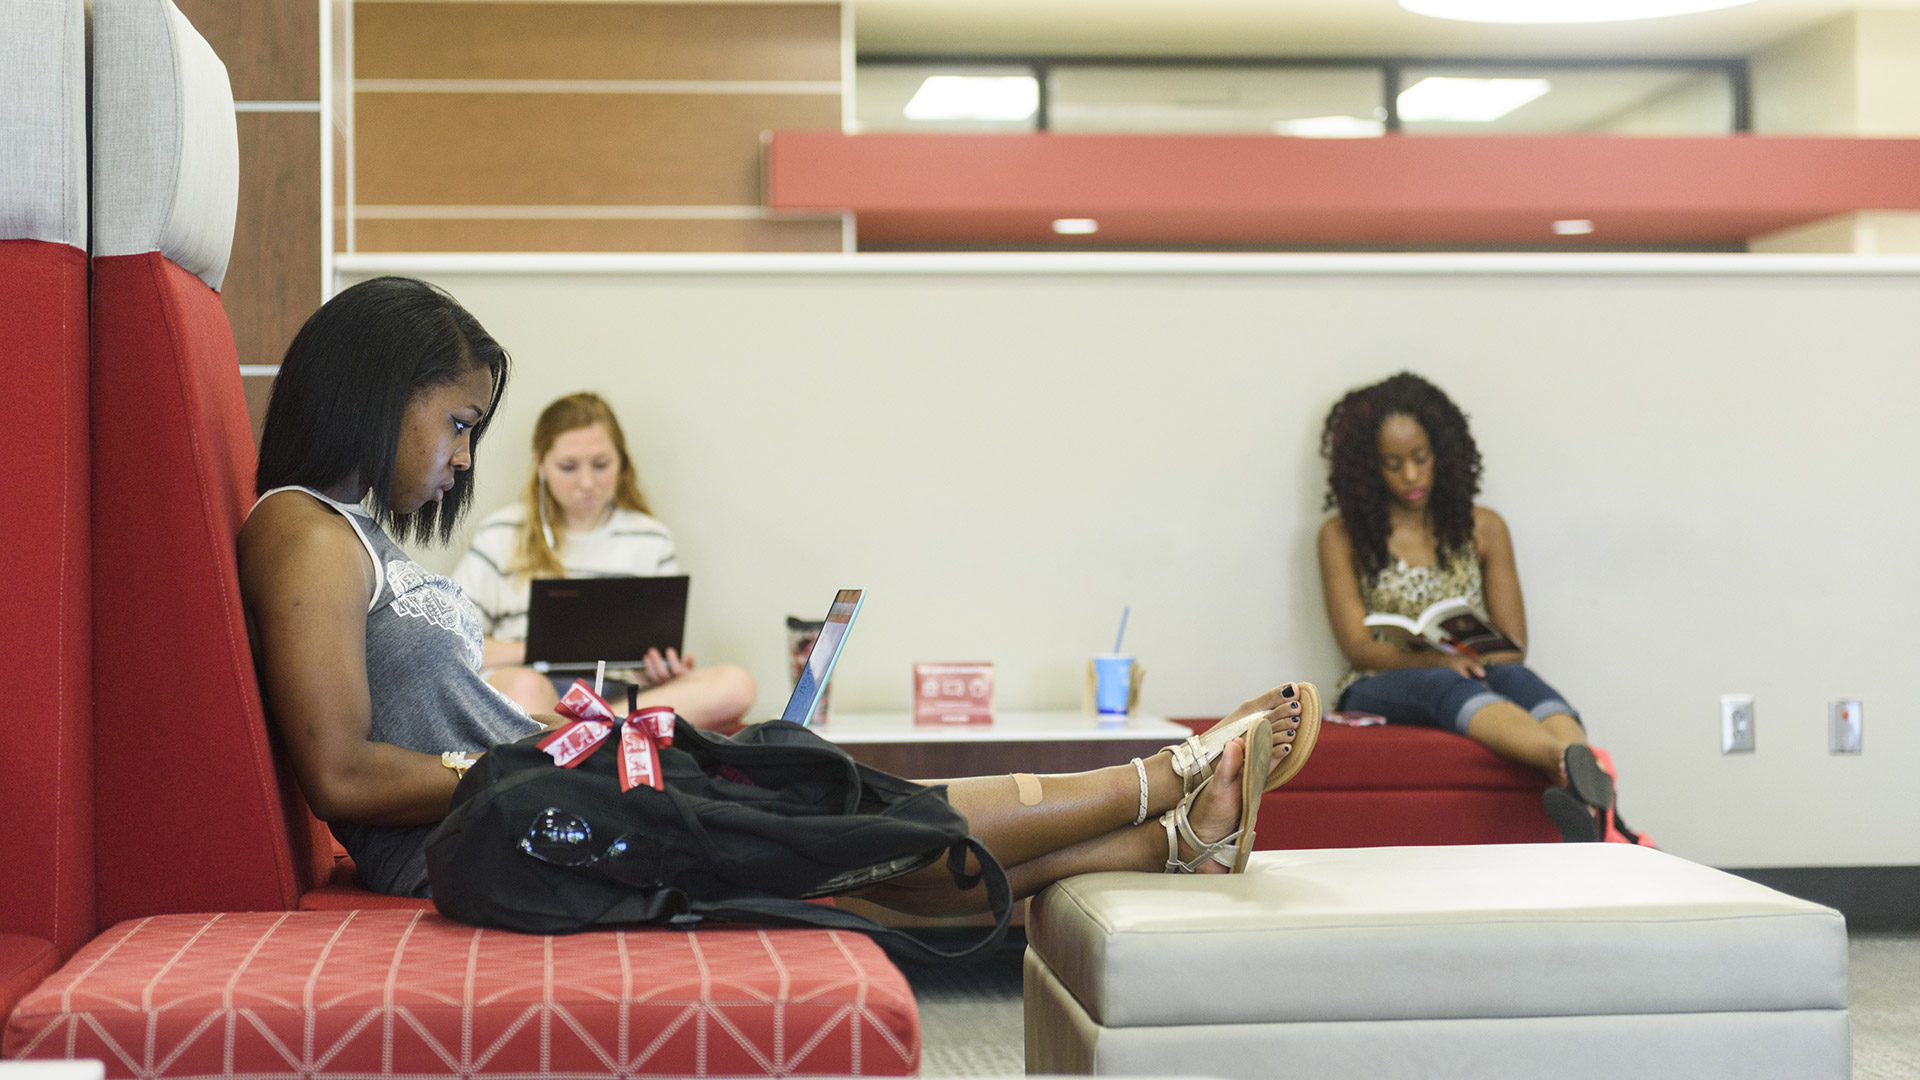 Story Image - Students in the Ferg reading